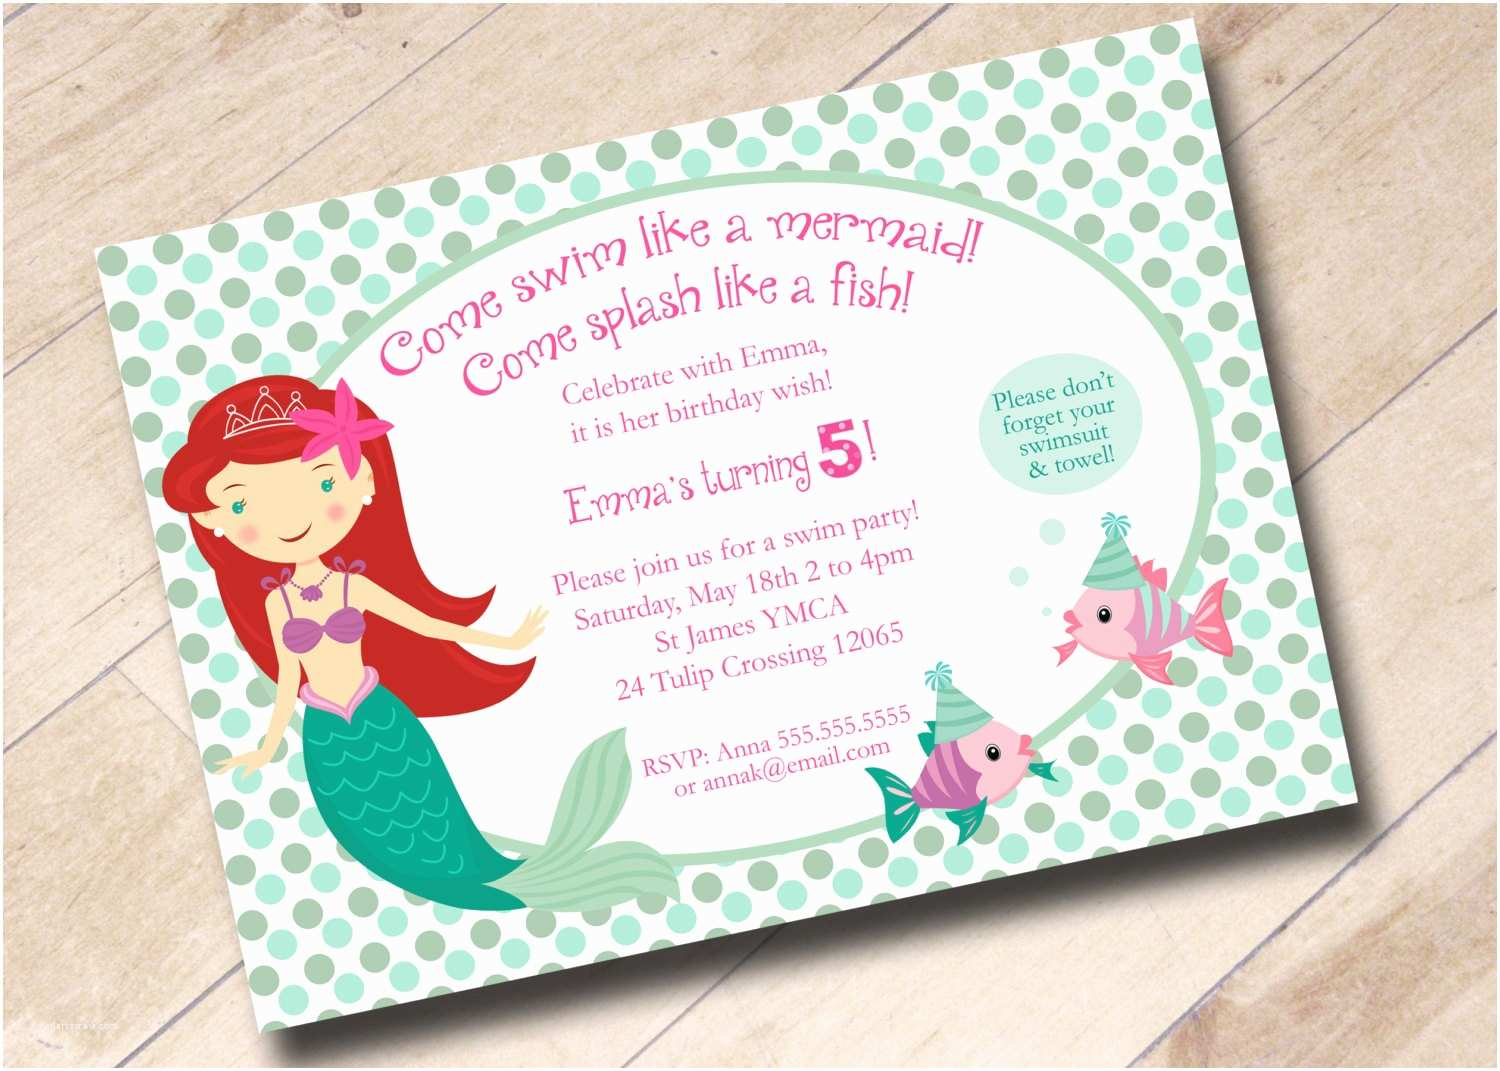 Little Mermaid Party Invitations 7 Plain Little Mermaid Party Invitation Wording